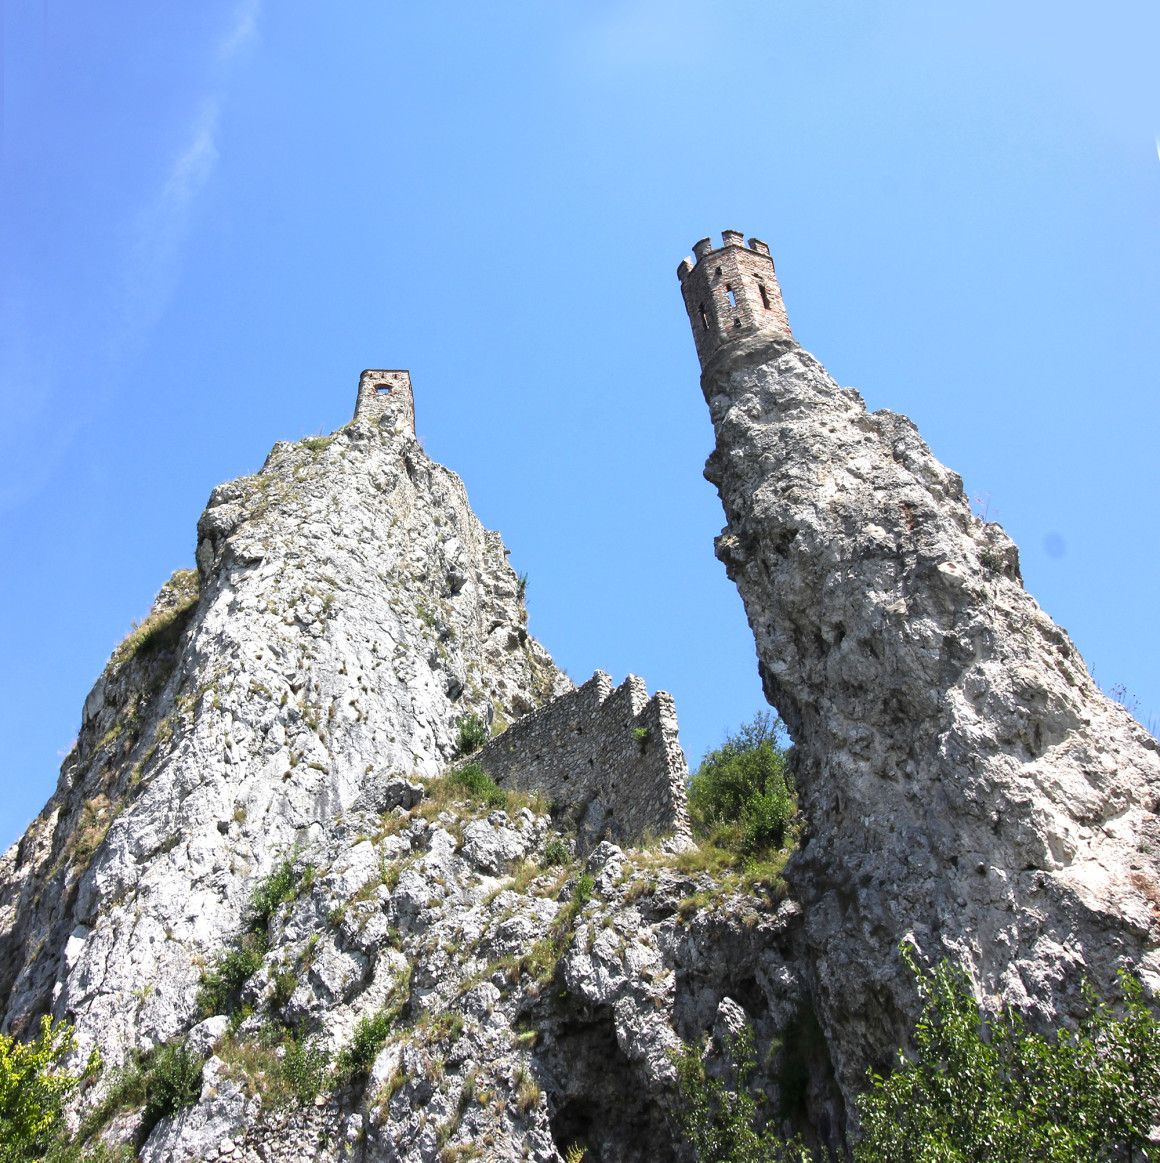 The ruins of Devin Castle near Bratislava - getting the train from Budapest - Bratislava - vienna.